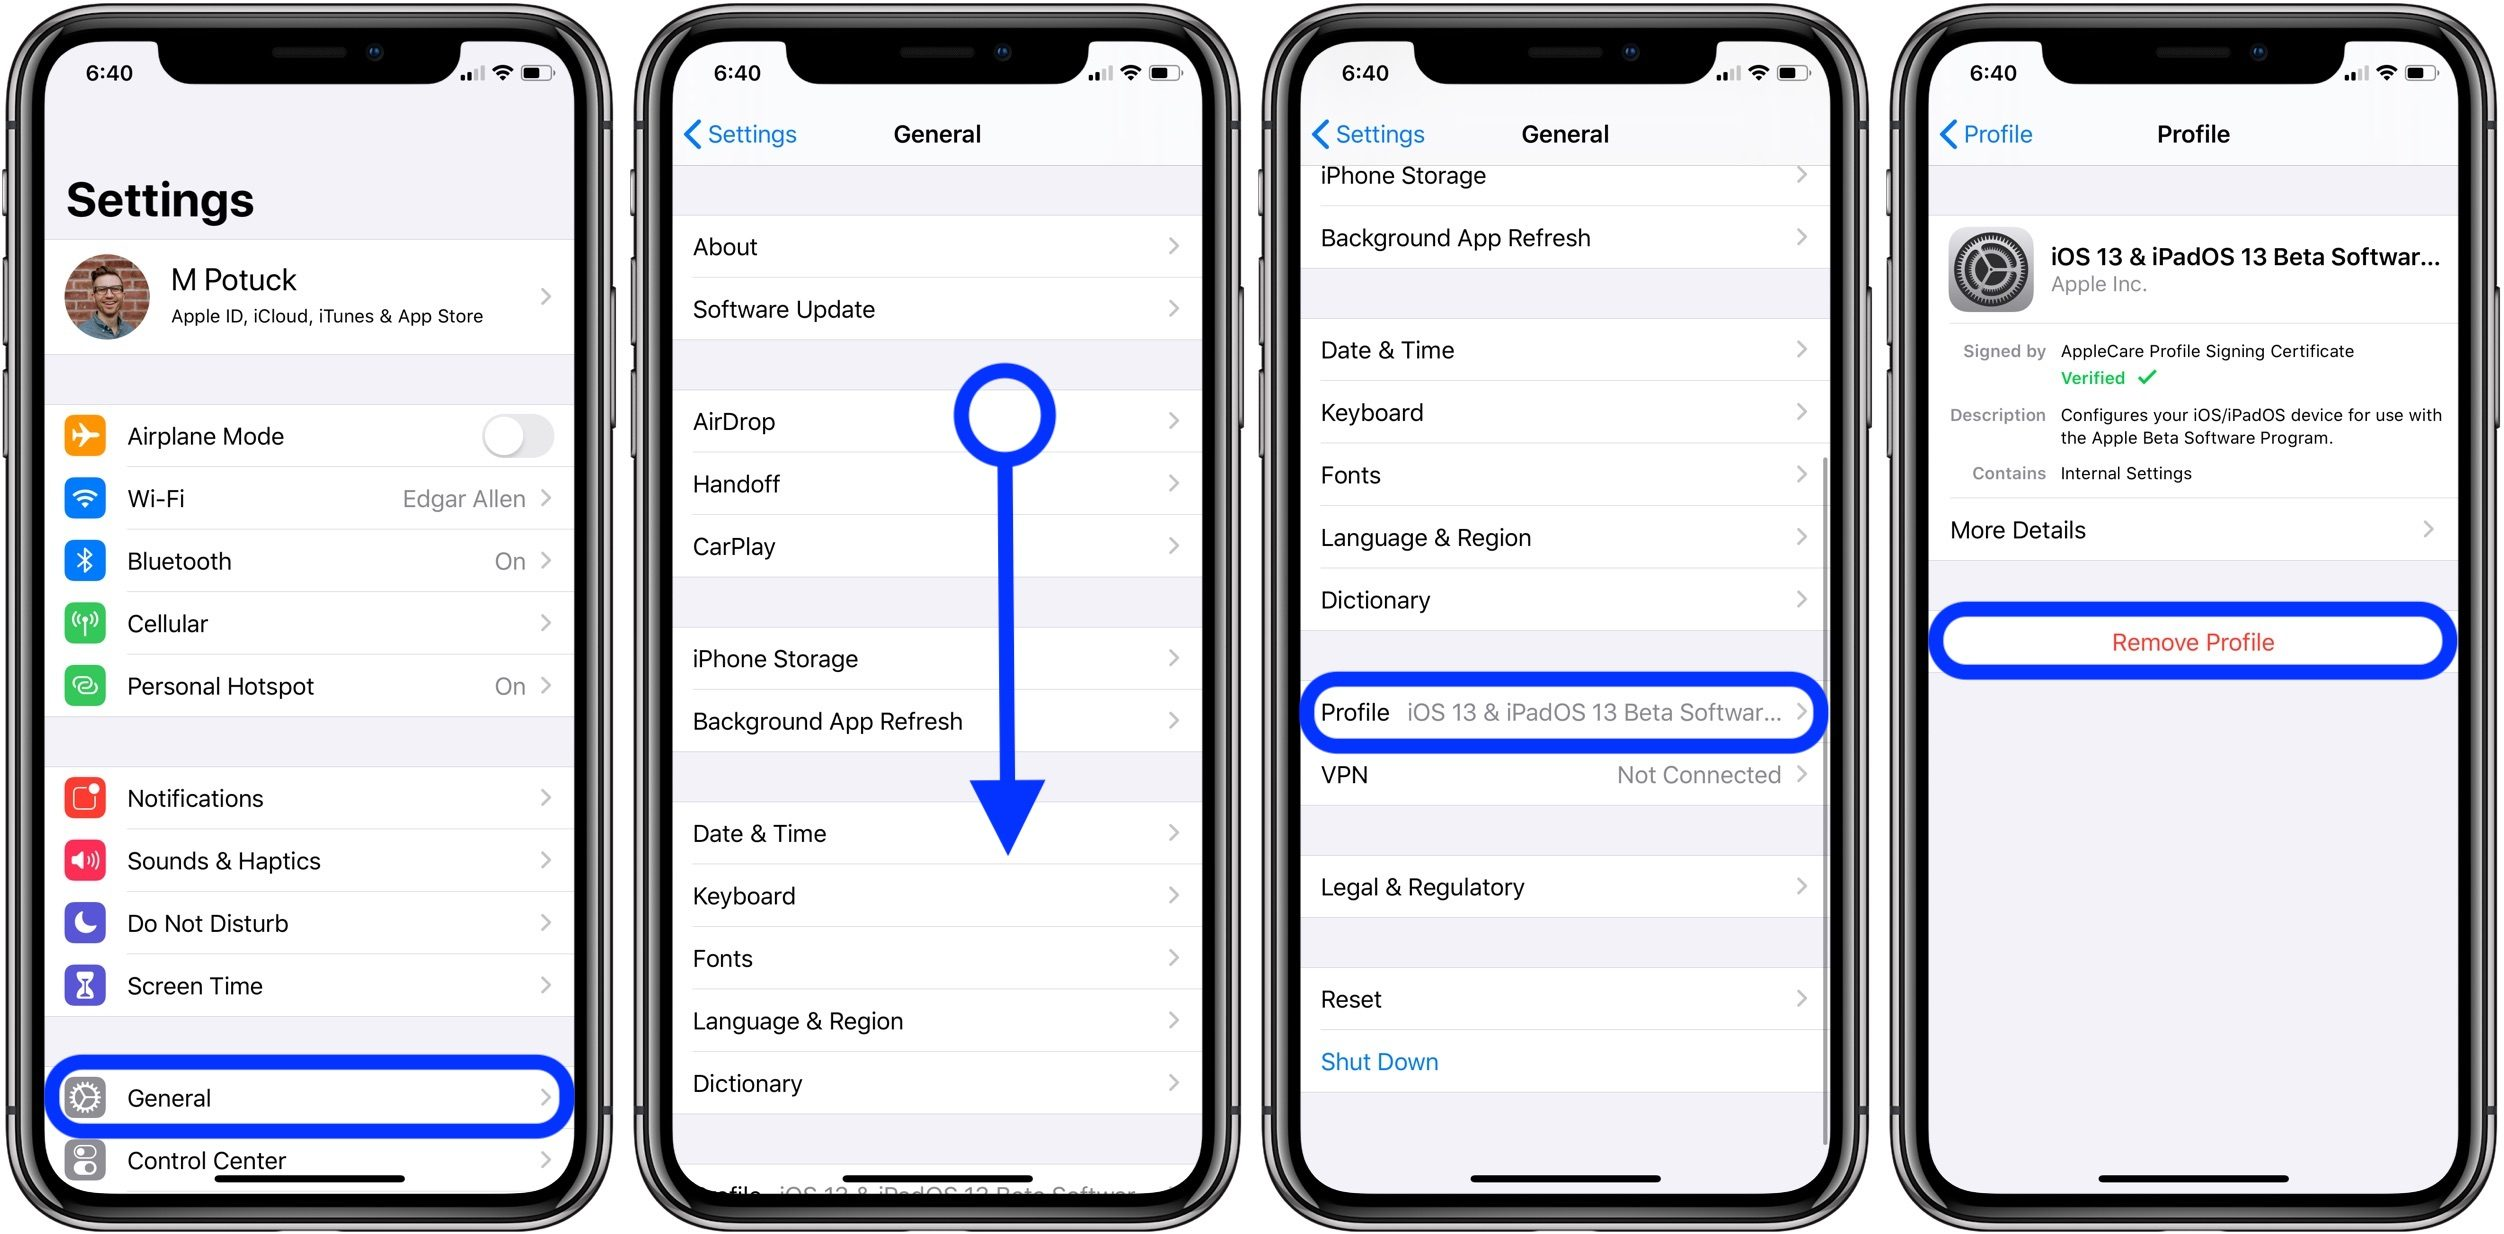 "<span href=""https://9to5mac.com/2019/08/06/remove-ios-configuration-profile-iphone/"">How to remove iOS configuration profiles on iPhone or iPad</a>"